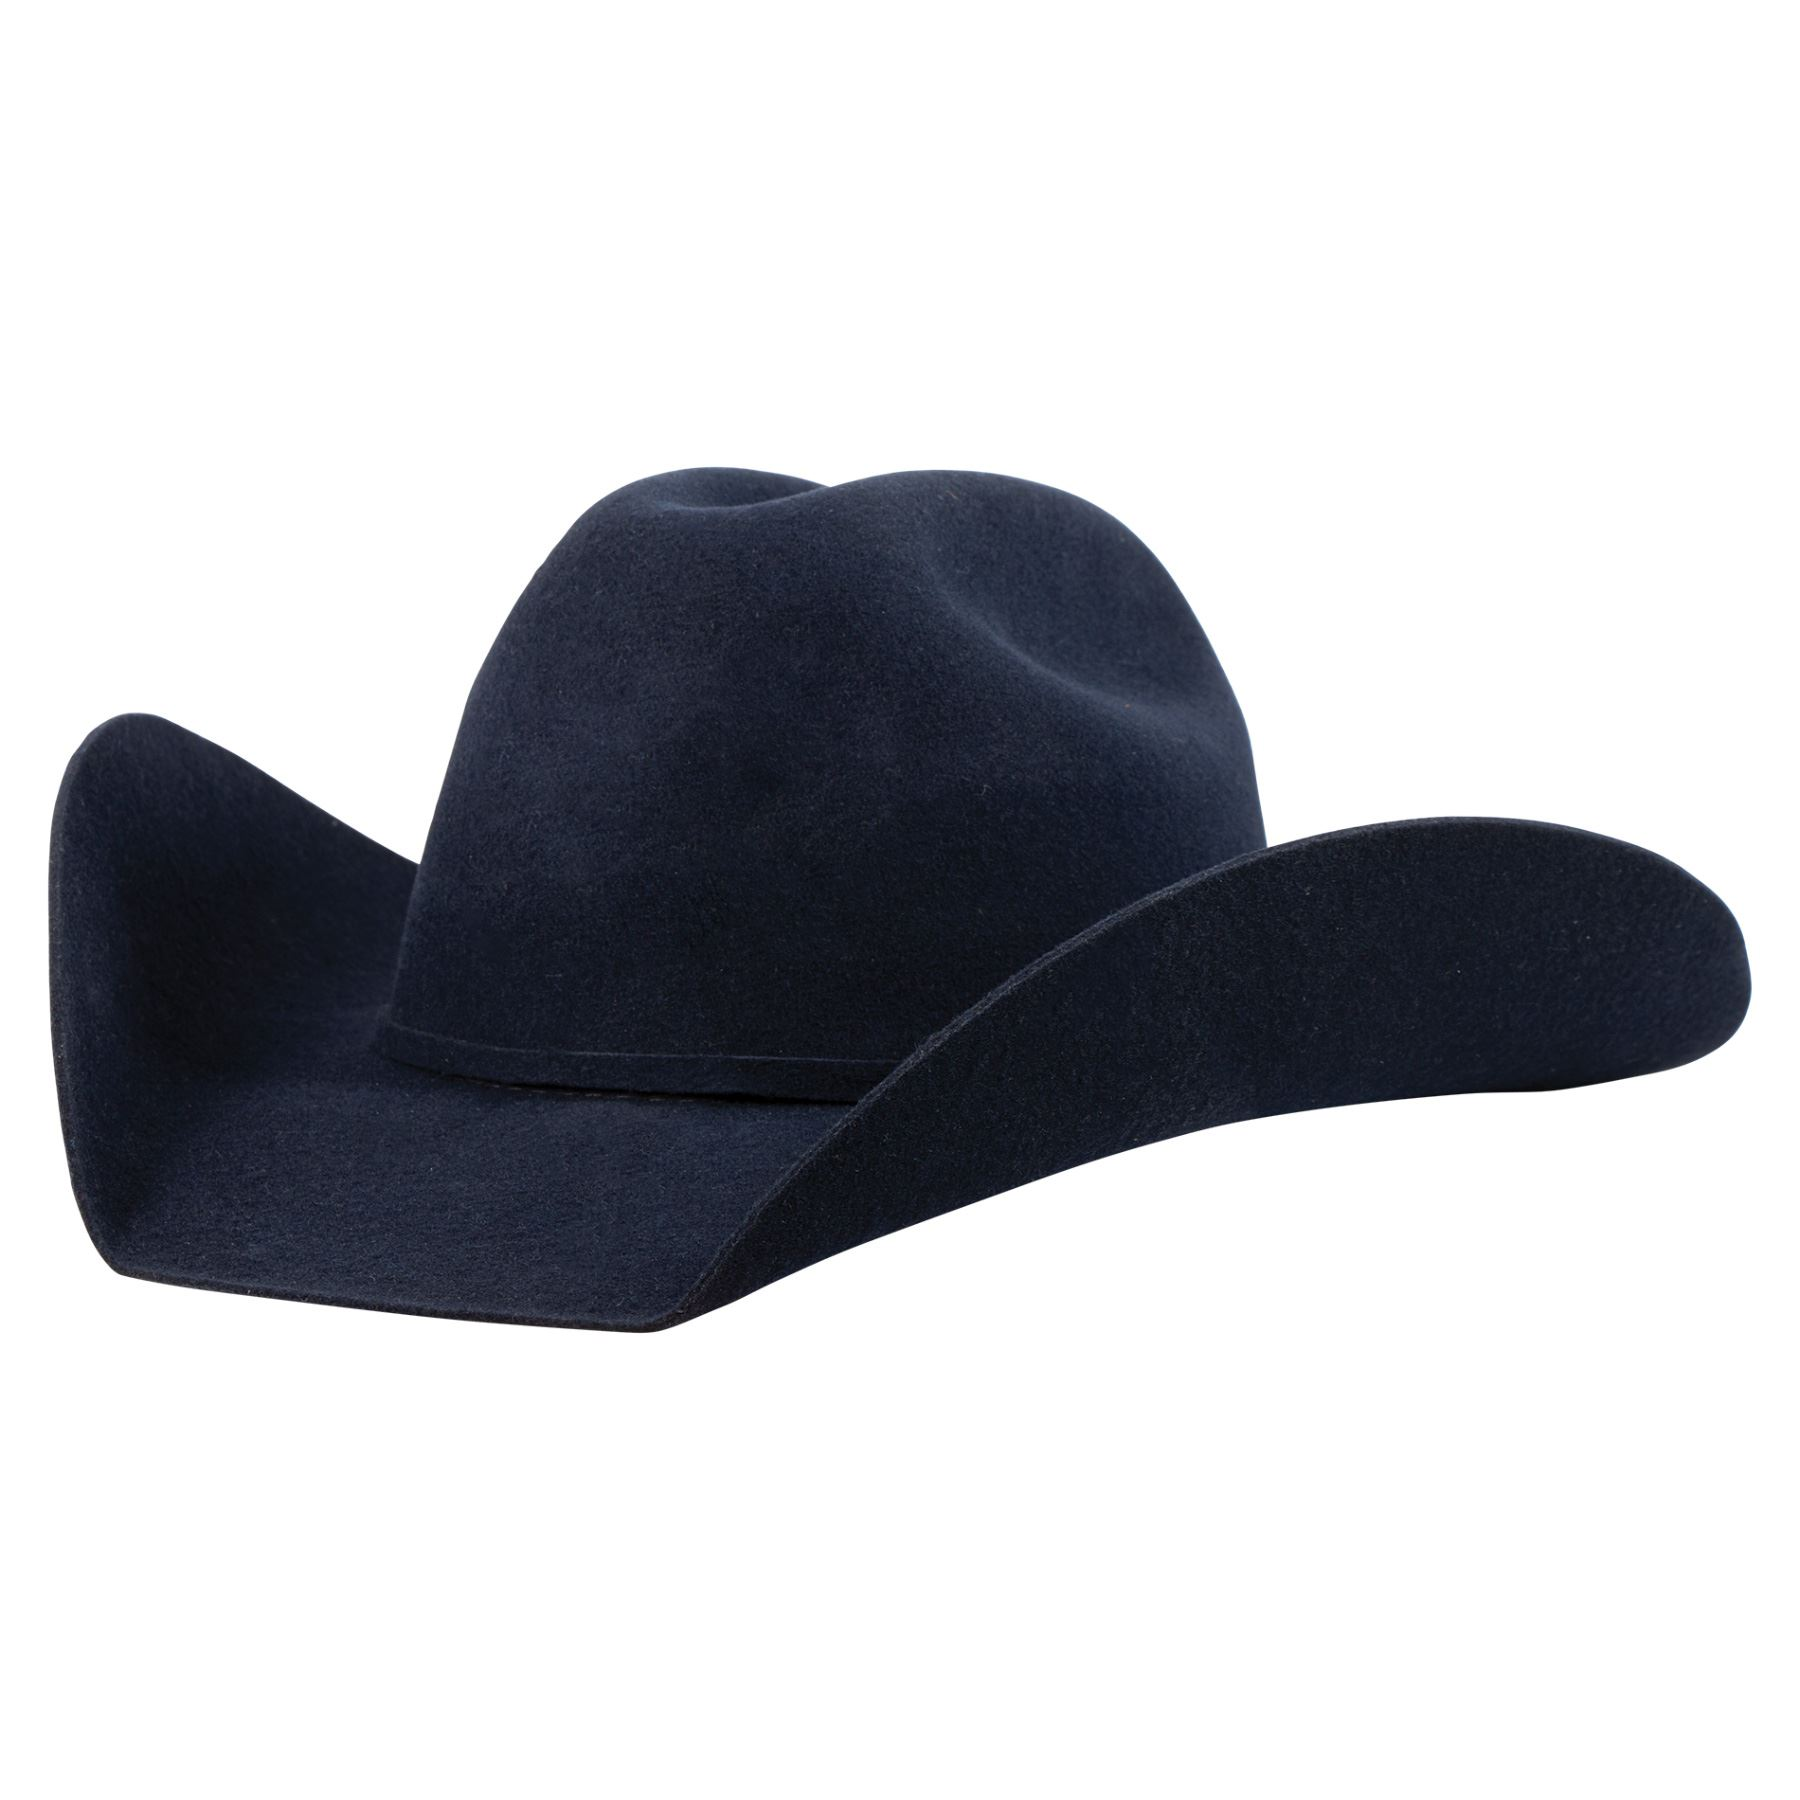 5e2182235be Schneiders 5X Felt Cowboy Hat - Tan Belly in Western at Schneider ...